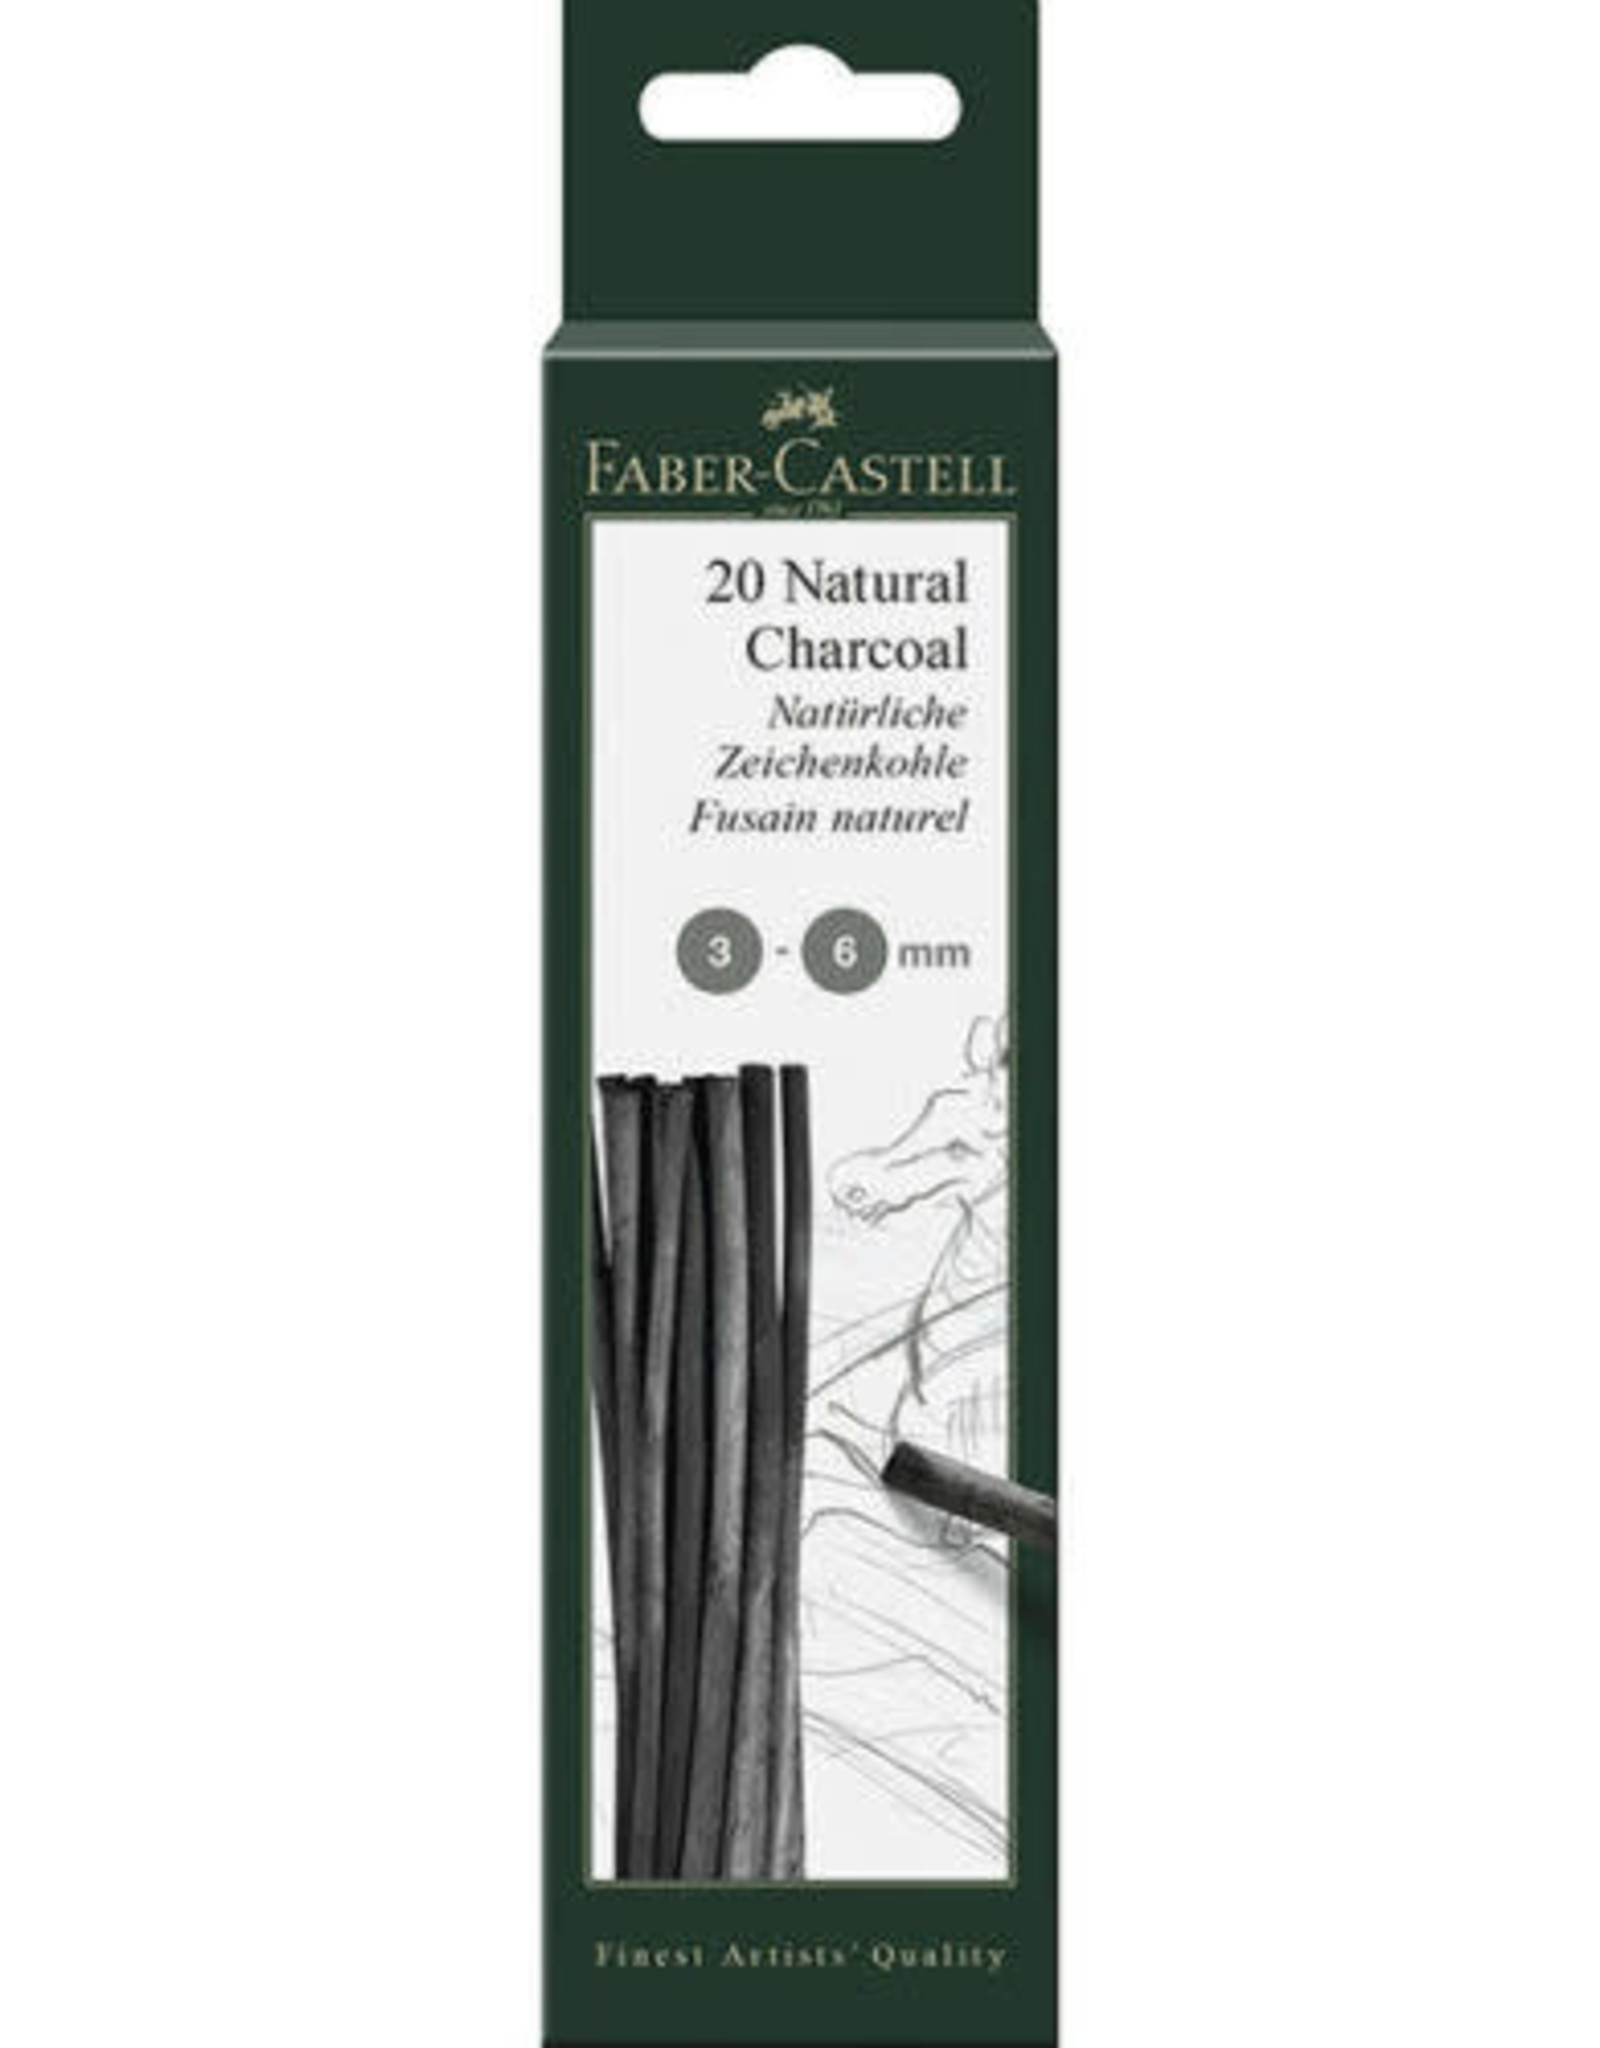 FABER-CASTELL 20 NATURAL CHARCOAL 3-6MM